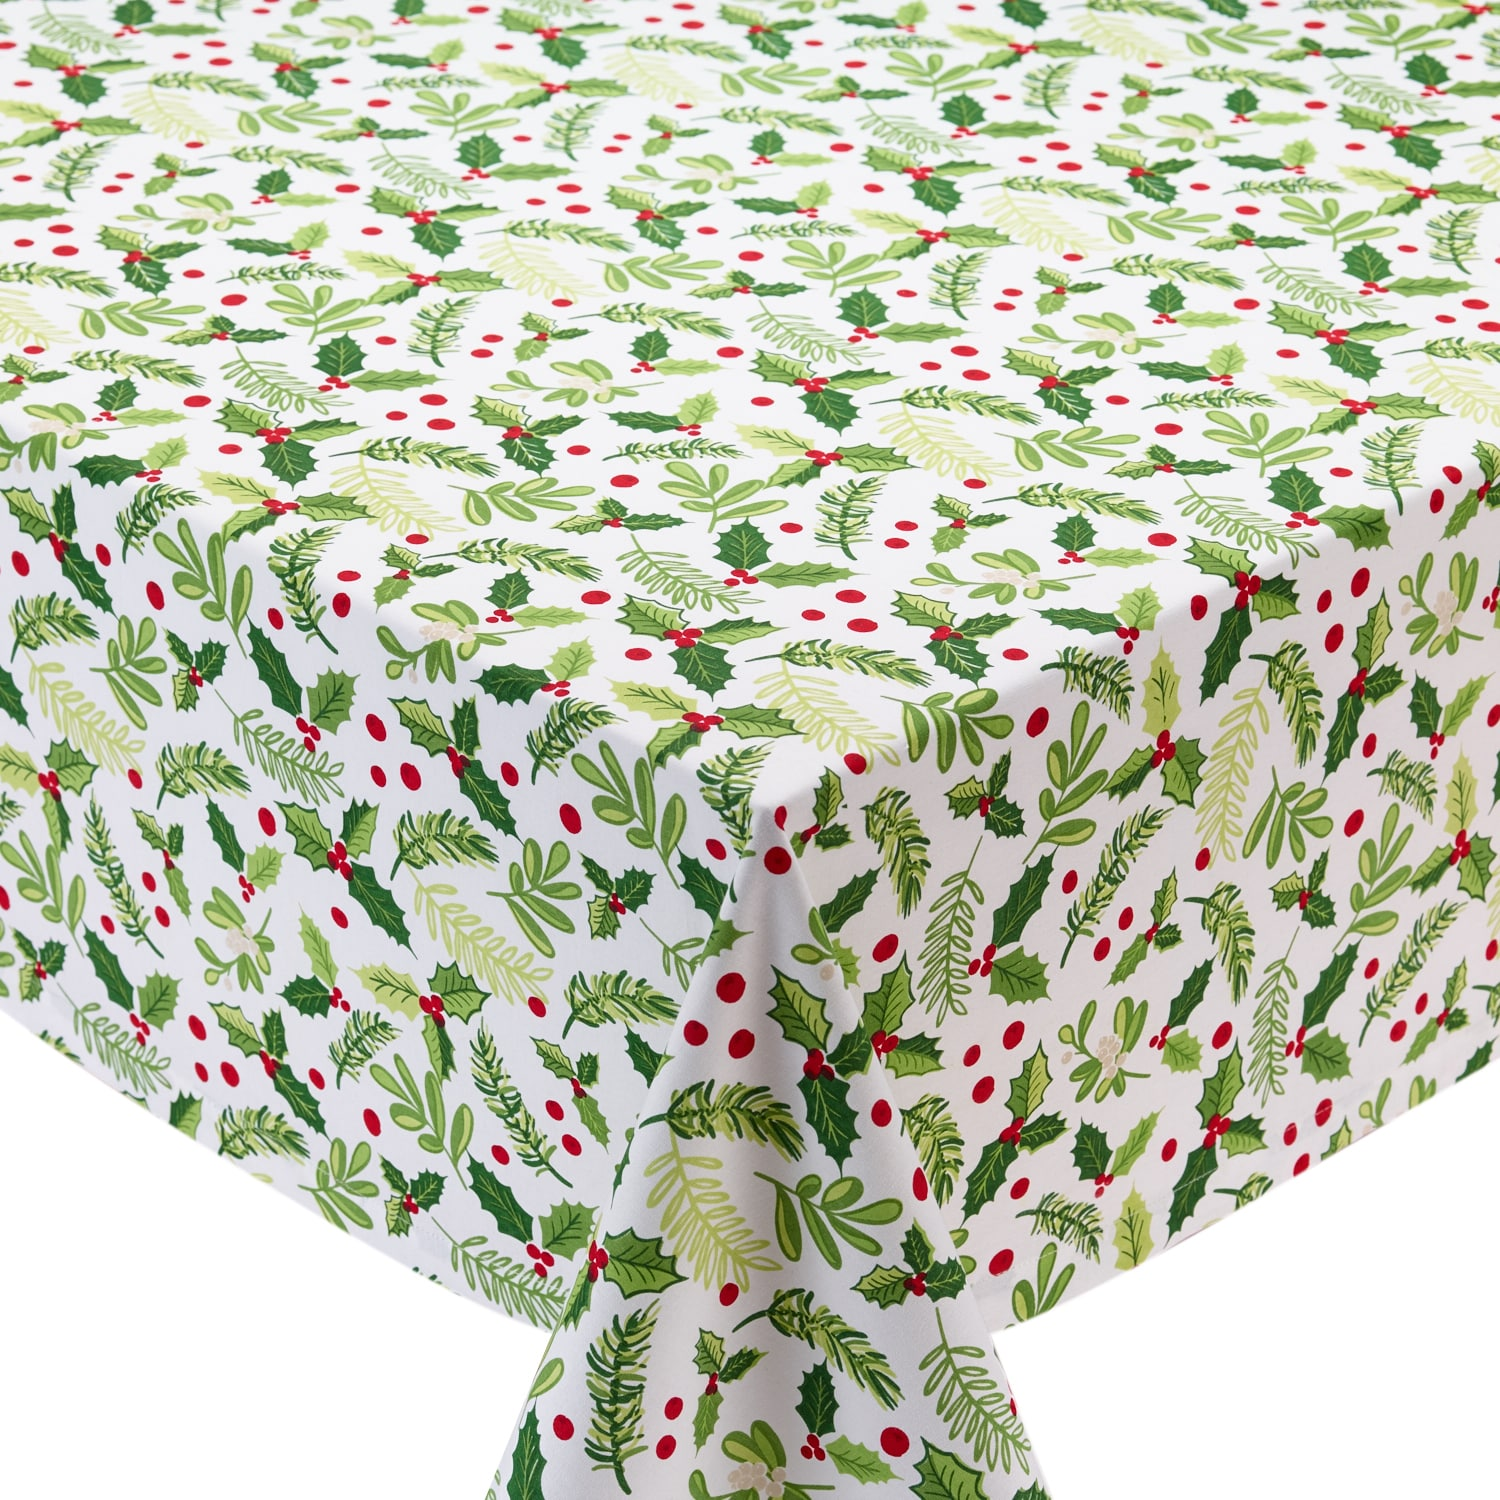 Shop Boughs Of Holly Printed Tablecloth   On Sale   Free Shipping Today    Overstock.com   16150178